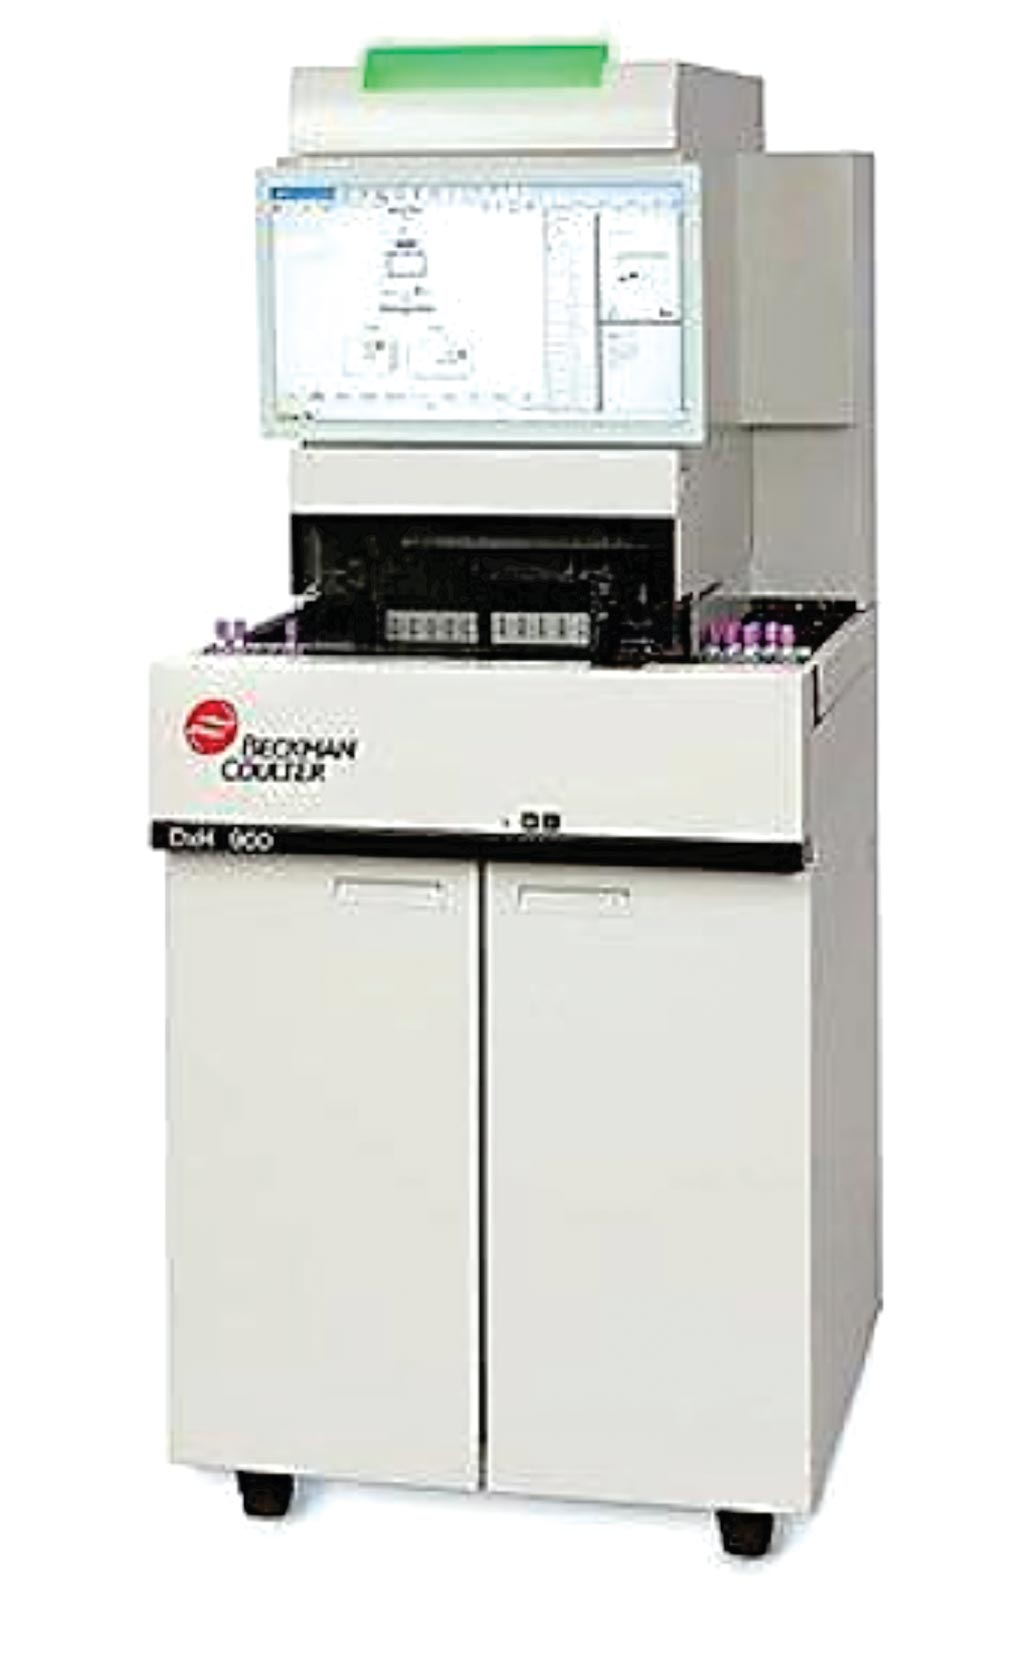 Image: The Early Sepsis Indicator uses the DxH 900 hematology analyzer (Photo courtesy of Beckman Coulter).